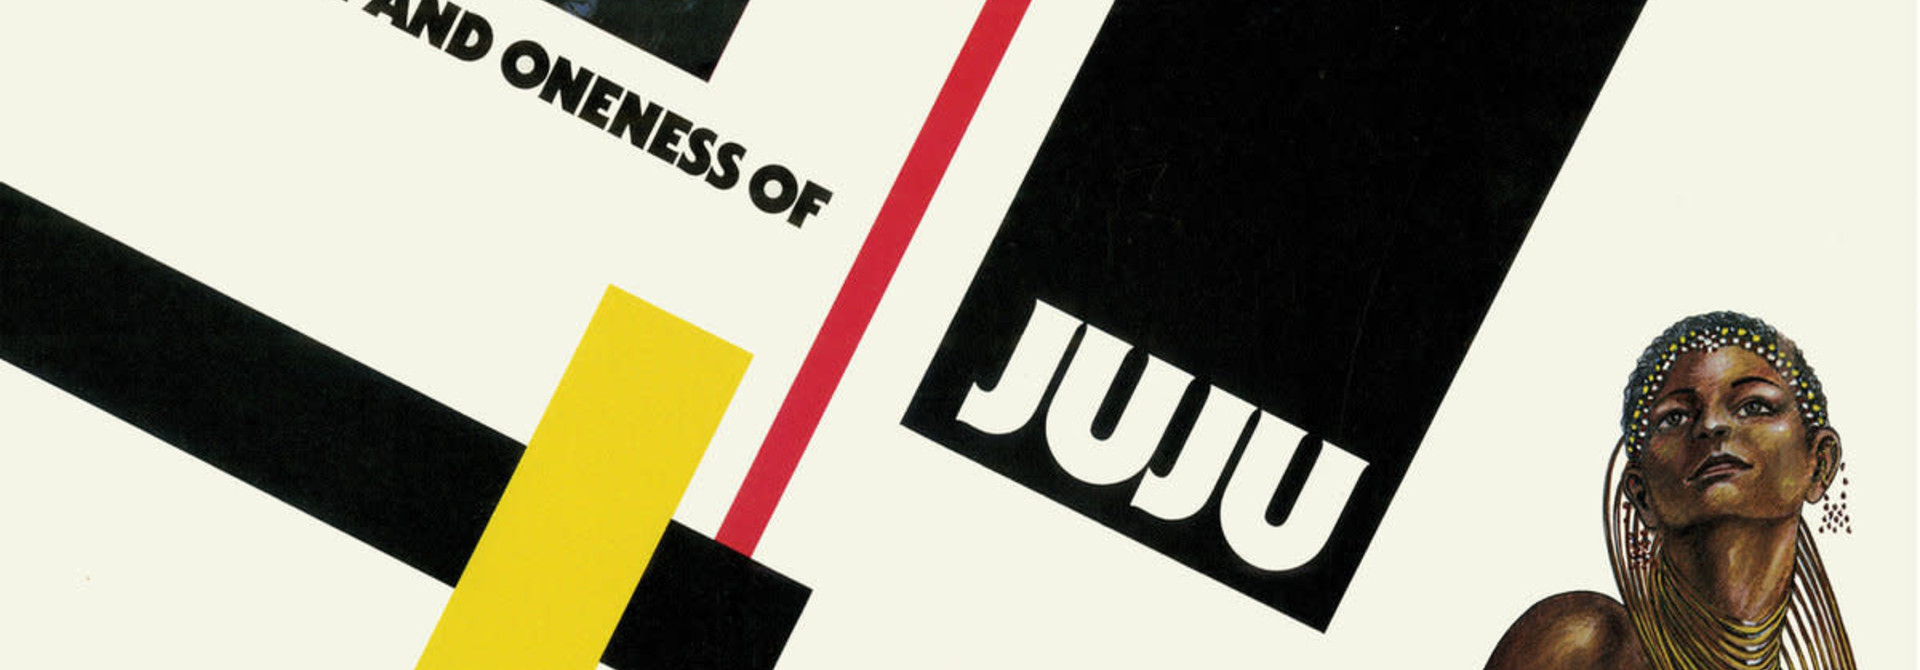 Plunky and Oneness of Juju • Make a Change (2LP)